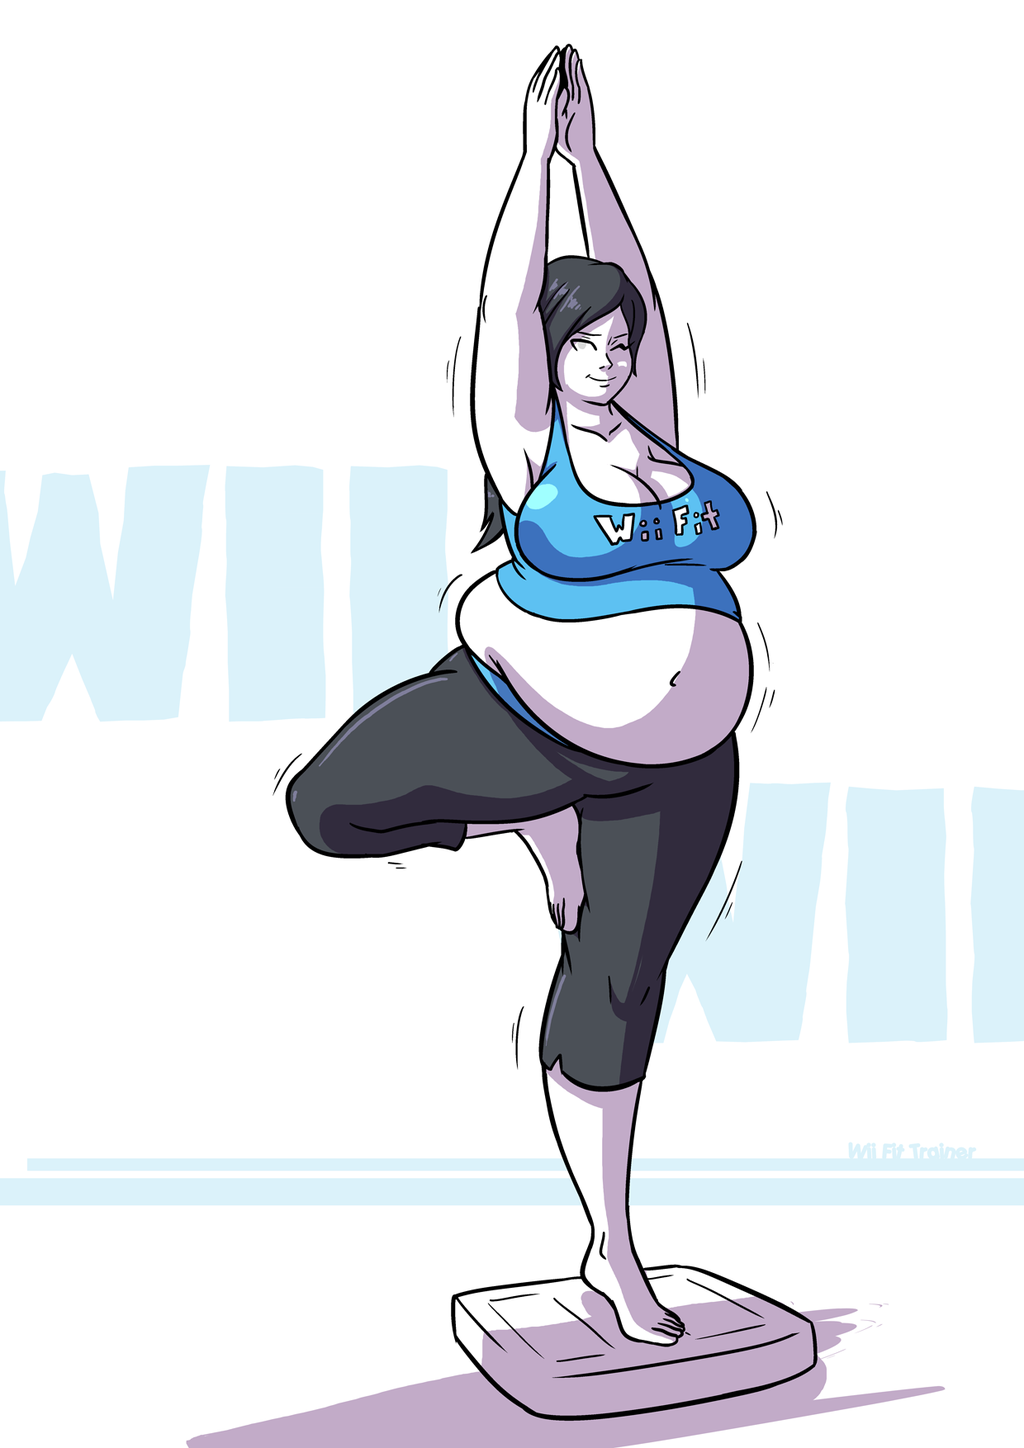 Wii fit trainer fat can suggest